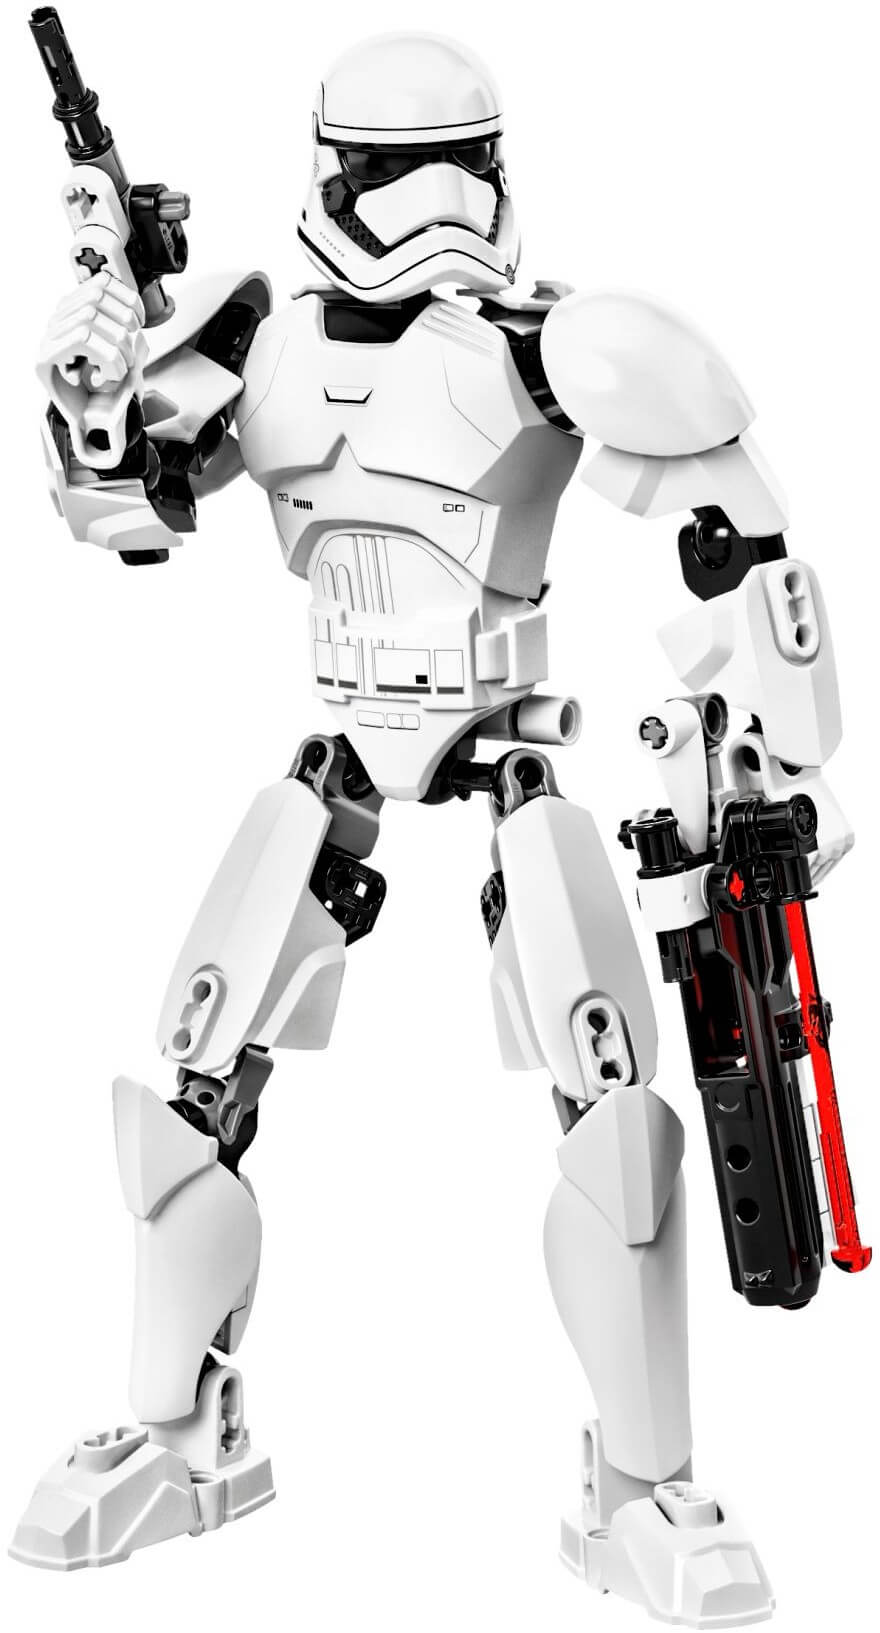 Mua đồ chơi LEGO 75114 - LEGO Star Wars 75114 - First Order Stormtrooper (LEGO Star Wars First Order Stormtrooper 75114)